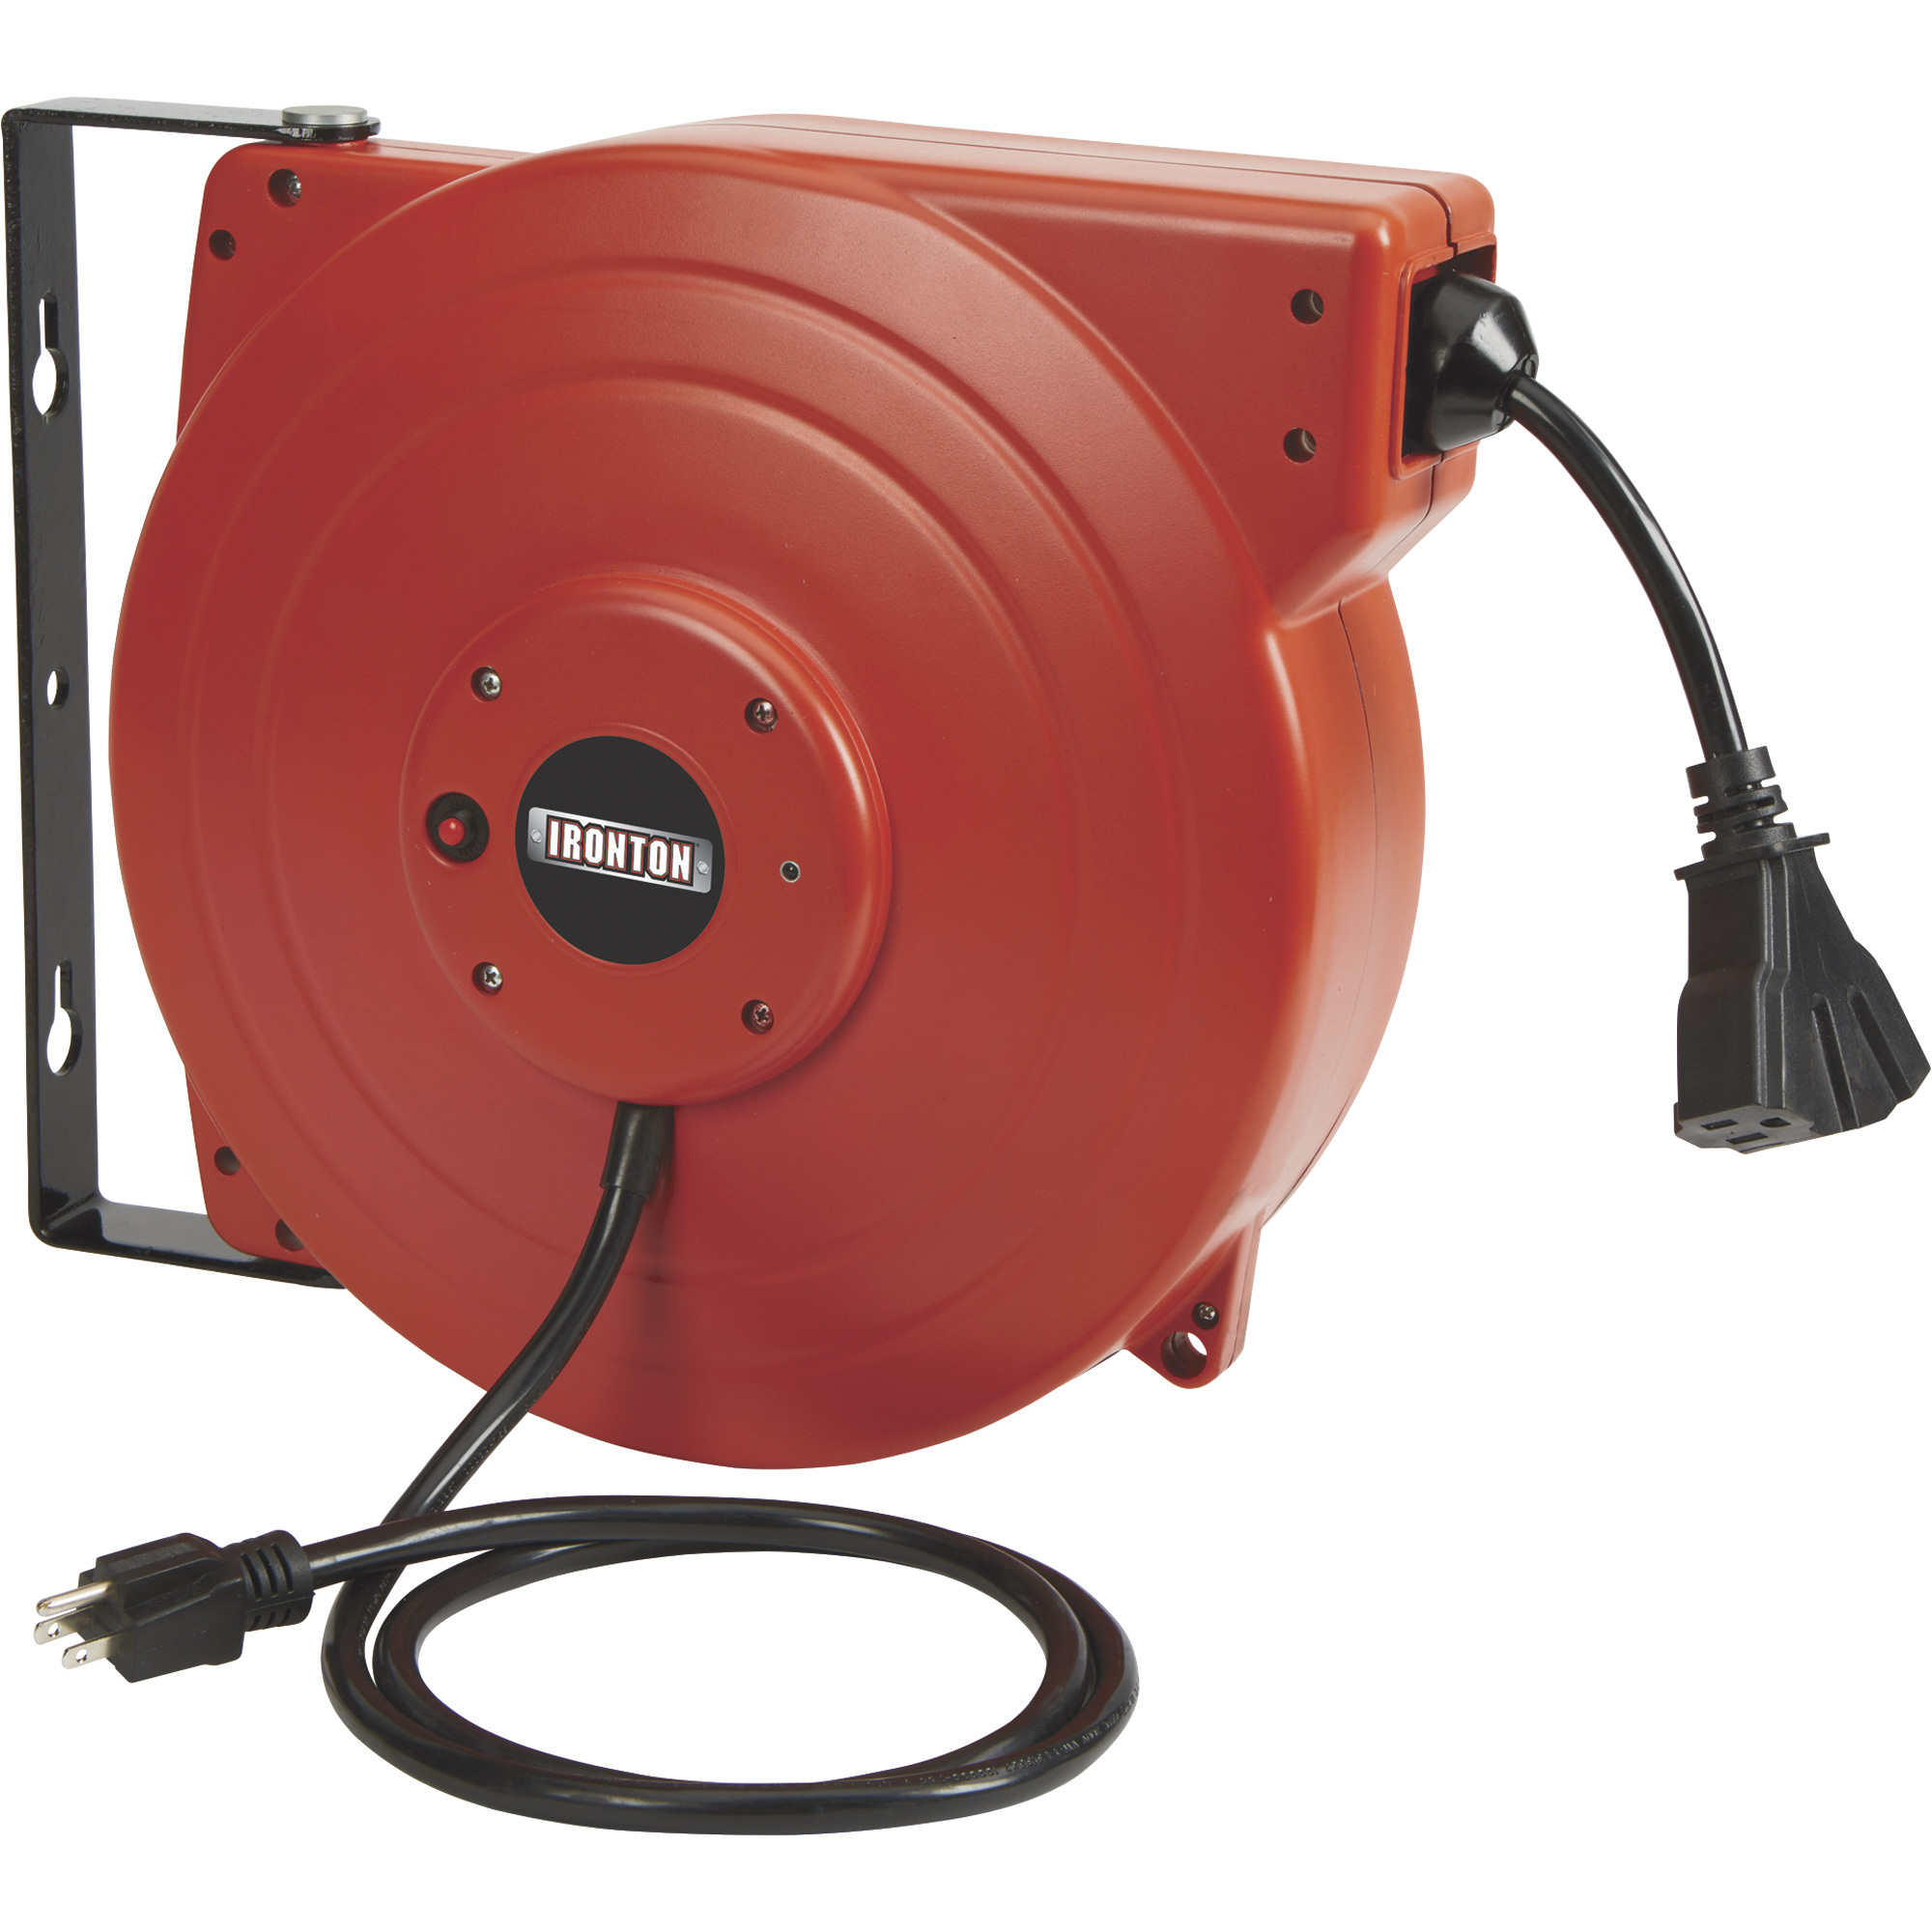 Ft Cord W Circuit Breaker 16 Gauge Power All Extension Cords Are The Electric Reels Retractable Northern Tool Equipment Advantage Exclusive Ironton Reel With Triple Tap 65ft 12 3 Sjt